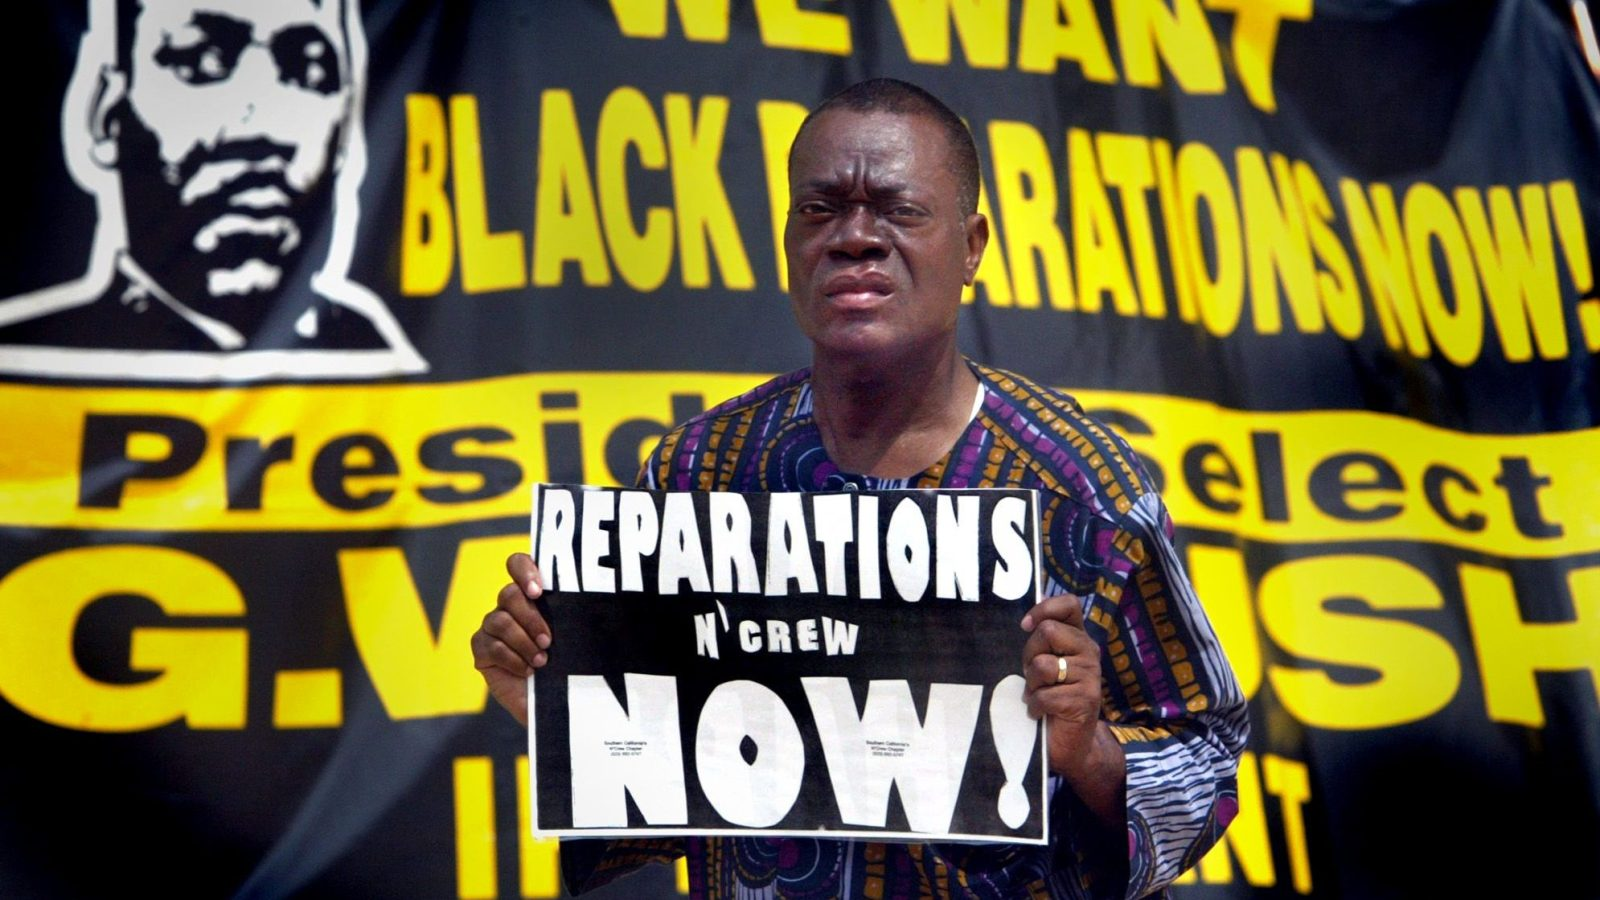 Black News: What the US can learn from Africa about slavery reparations 5/6/21